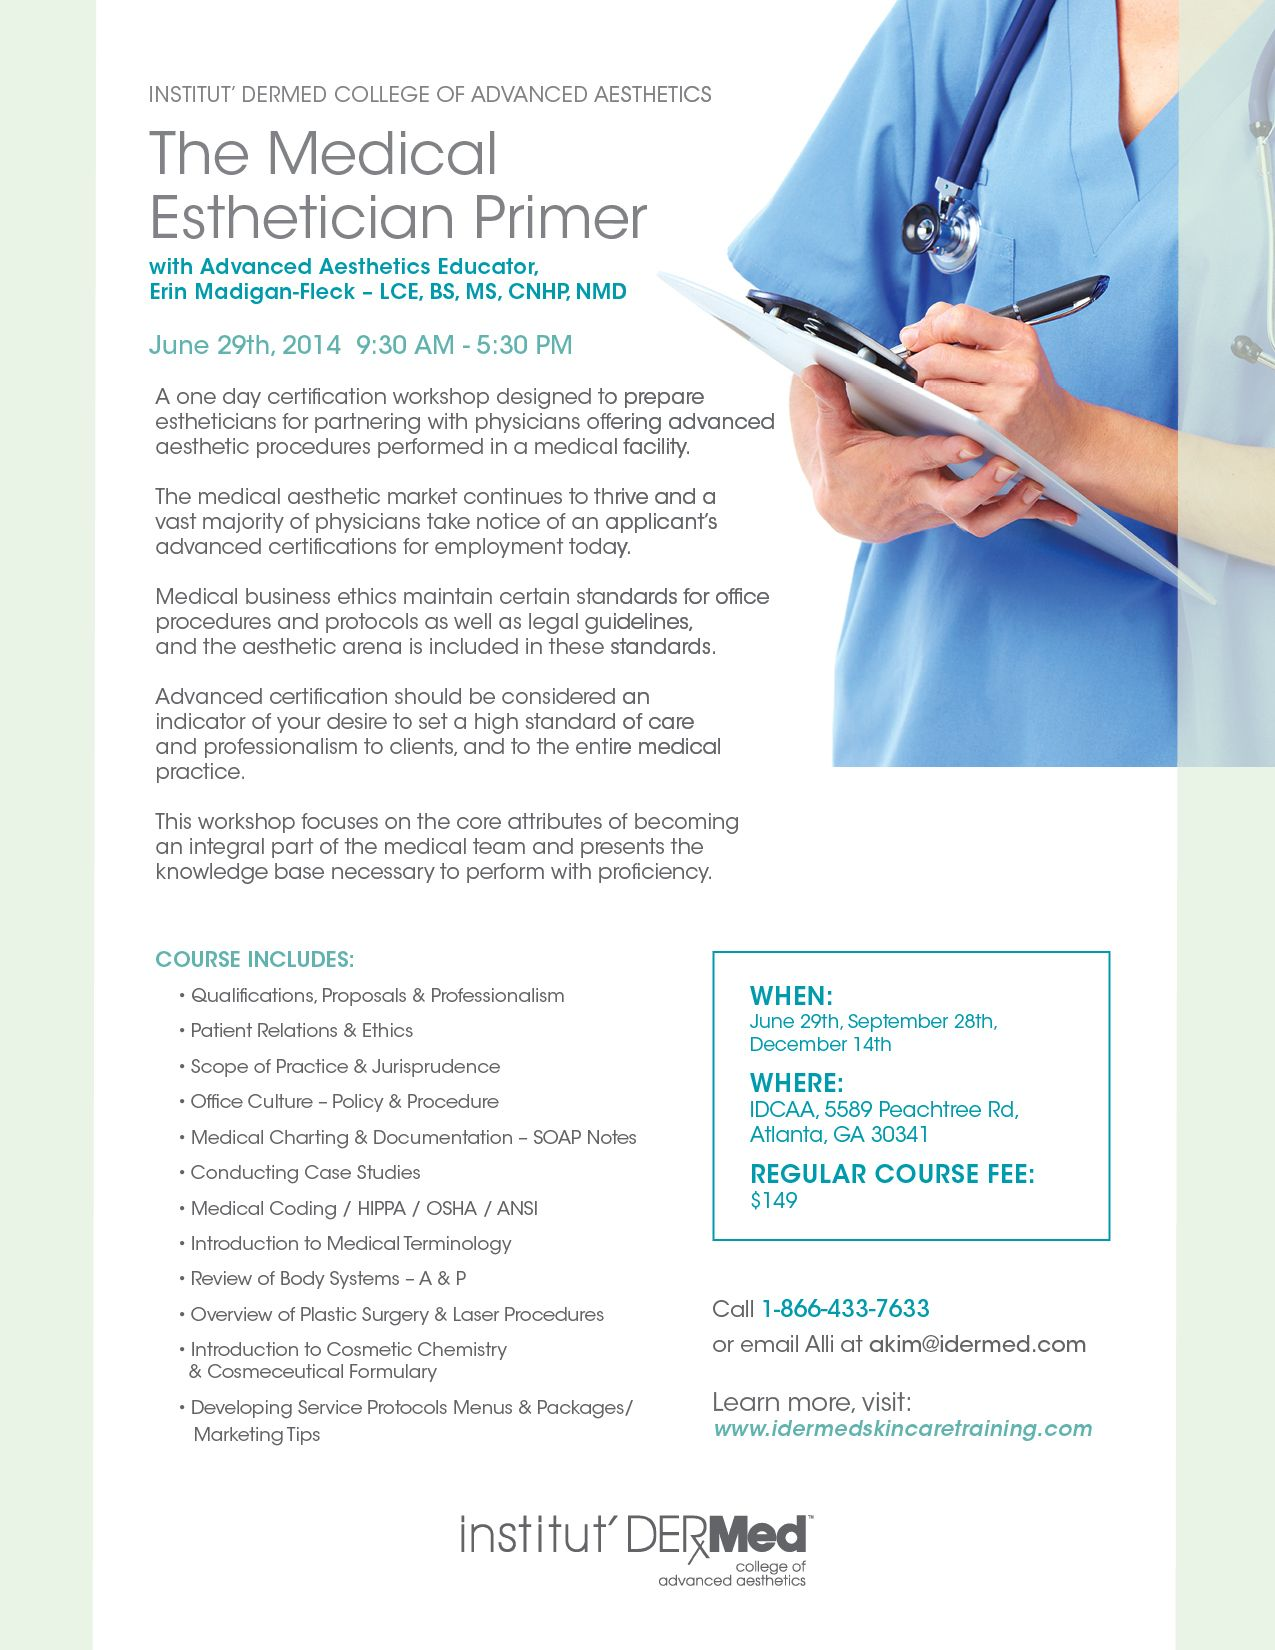 Medical esthetician primer a one day certification workshop medical esthetician primer a one day certification workshop designed to prepare estheticians for partnering with 1betcityfo Gallery